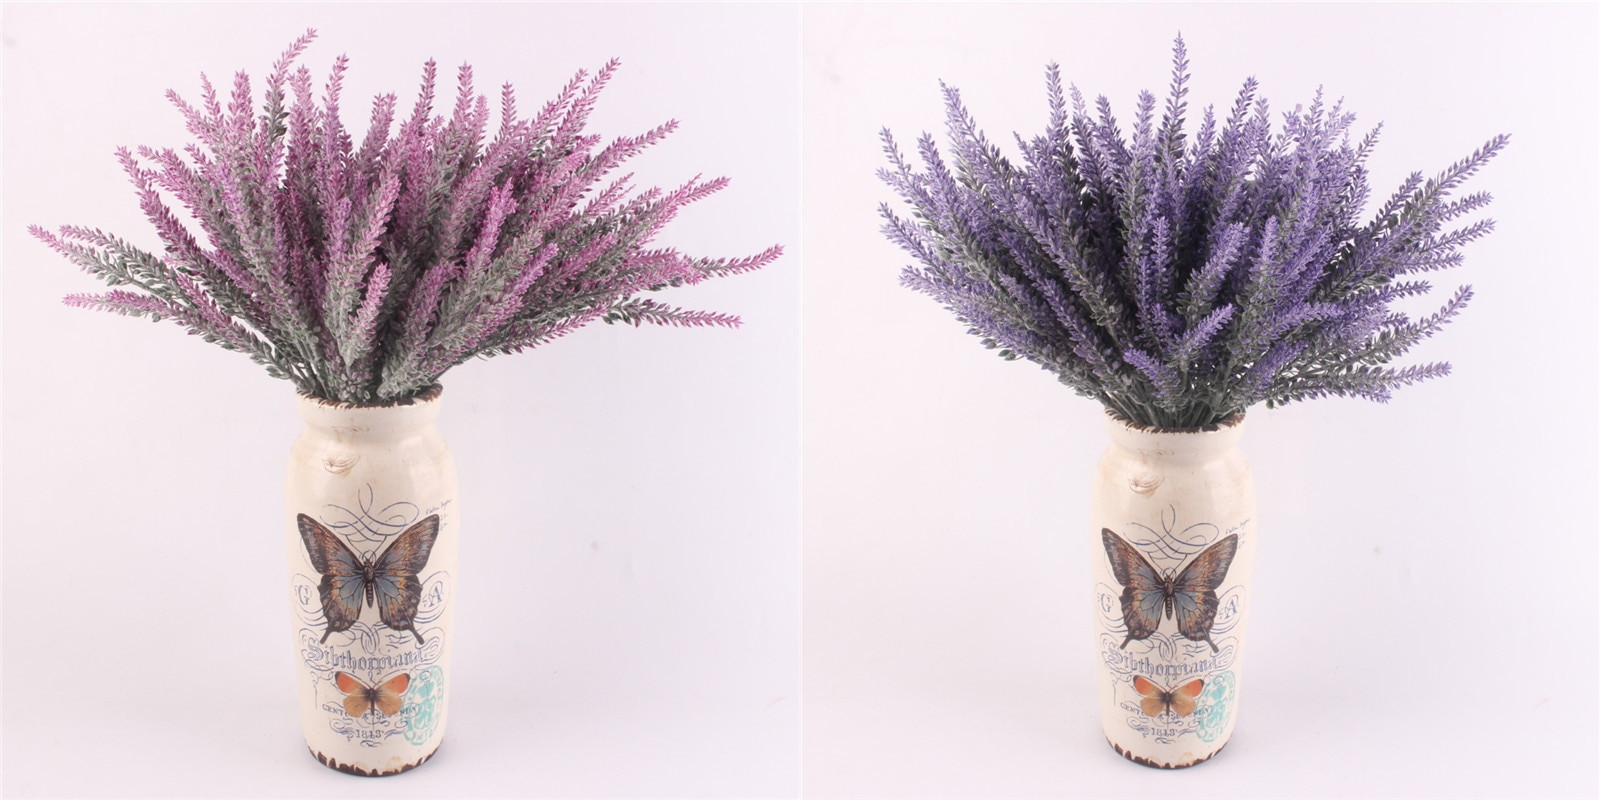 Lavender Flower Vase Of Romantic Provence Decoration Lavender Flower Silk Artificial Flowers with Aeproduct Getsubject